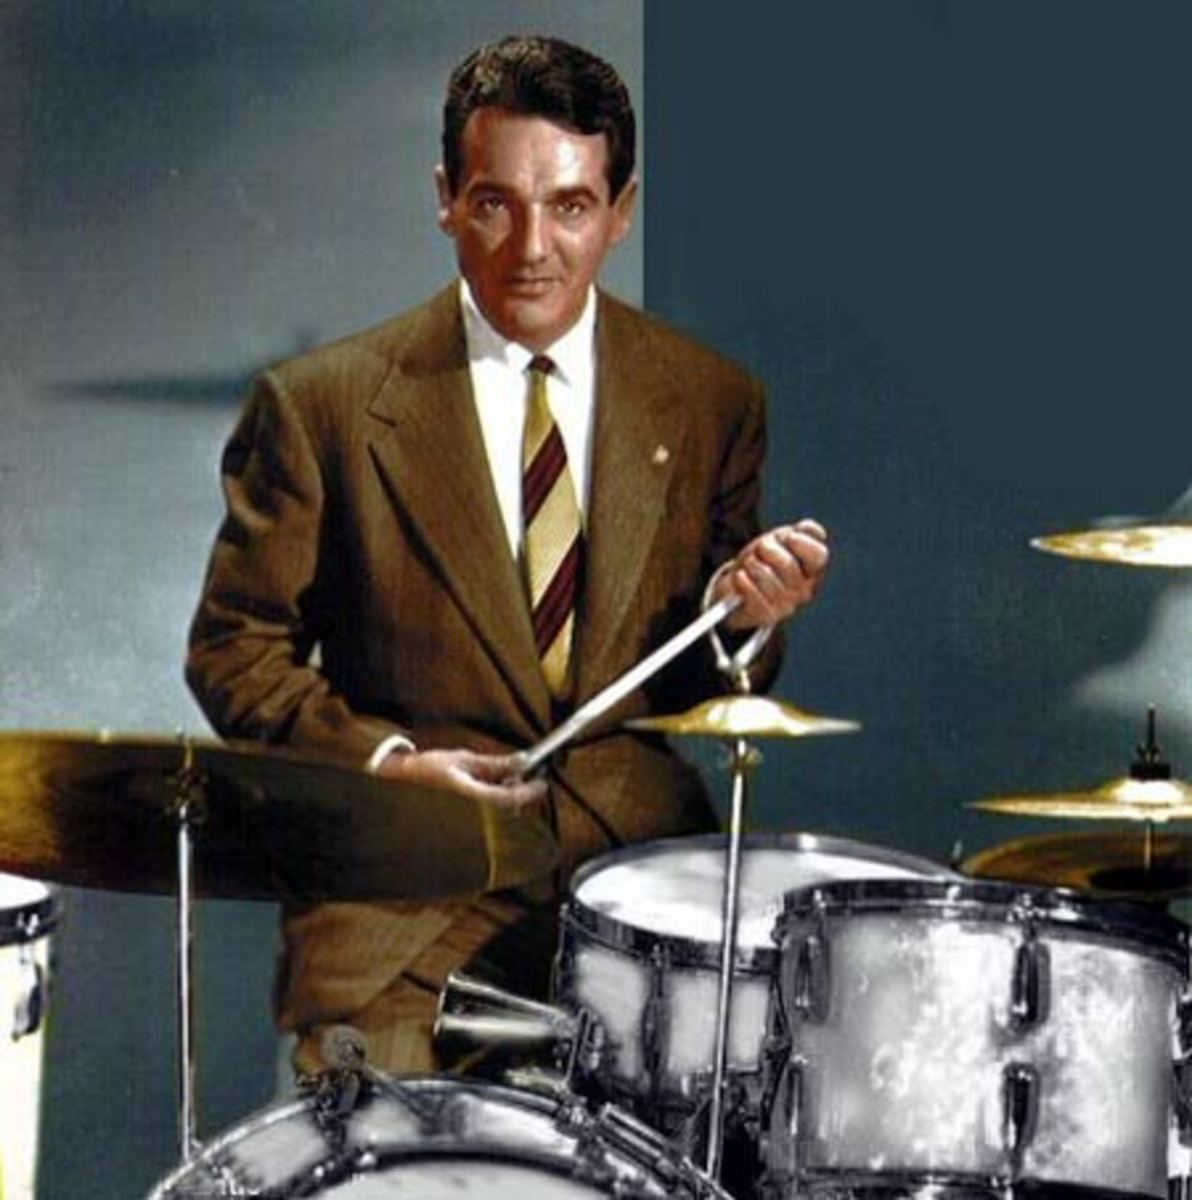 Gene Krupa, the first super star drummer